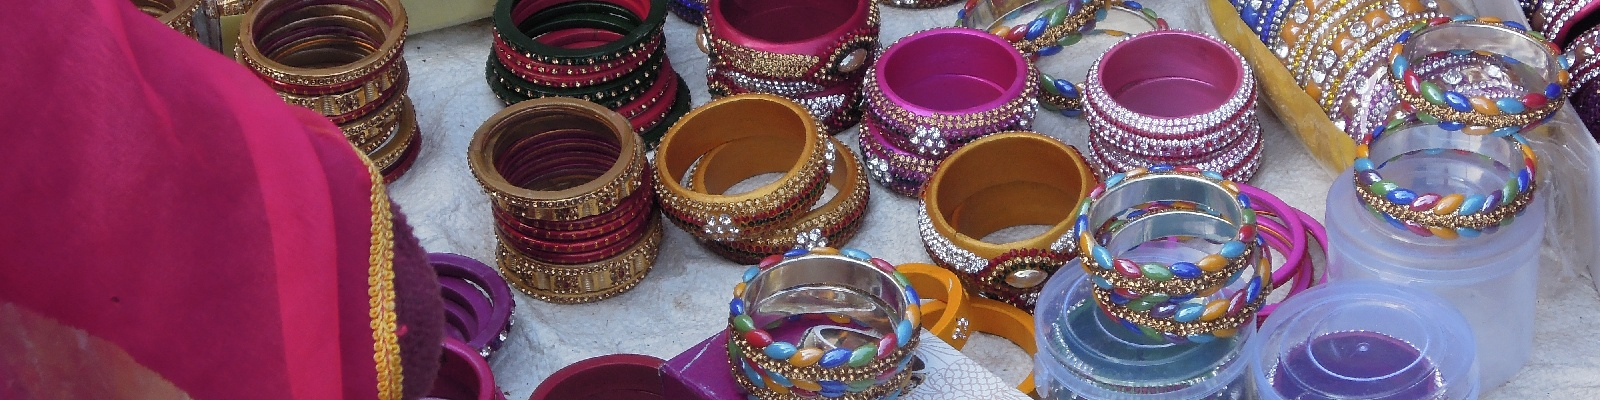 Bangles, bracelets traditionnels indiens